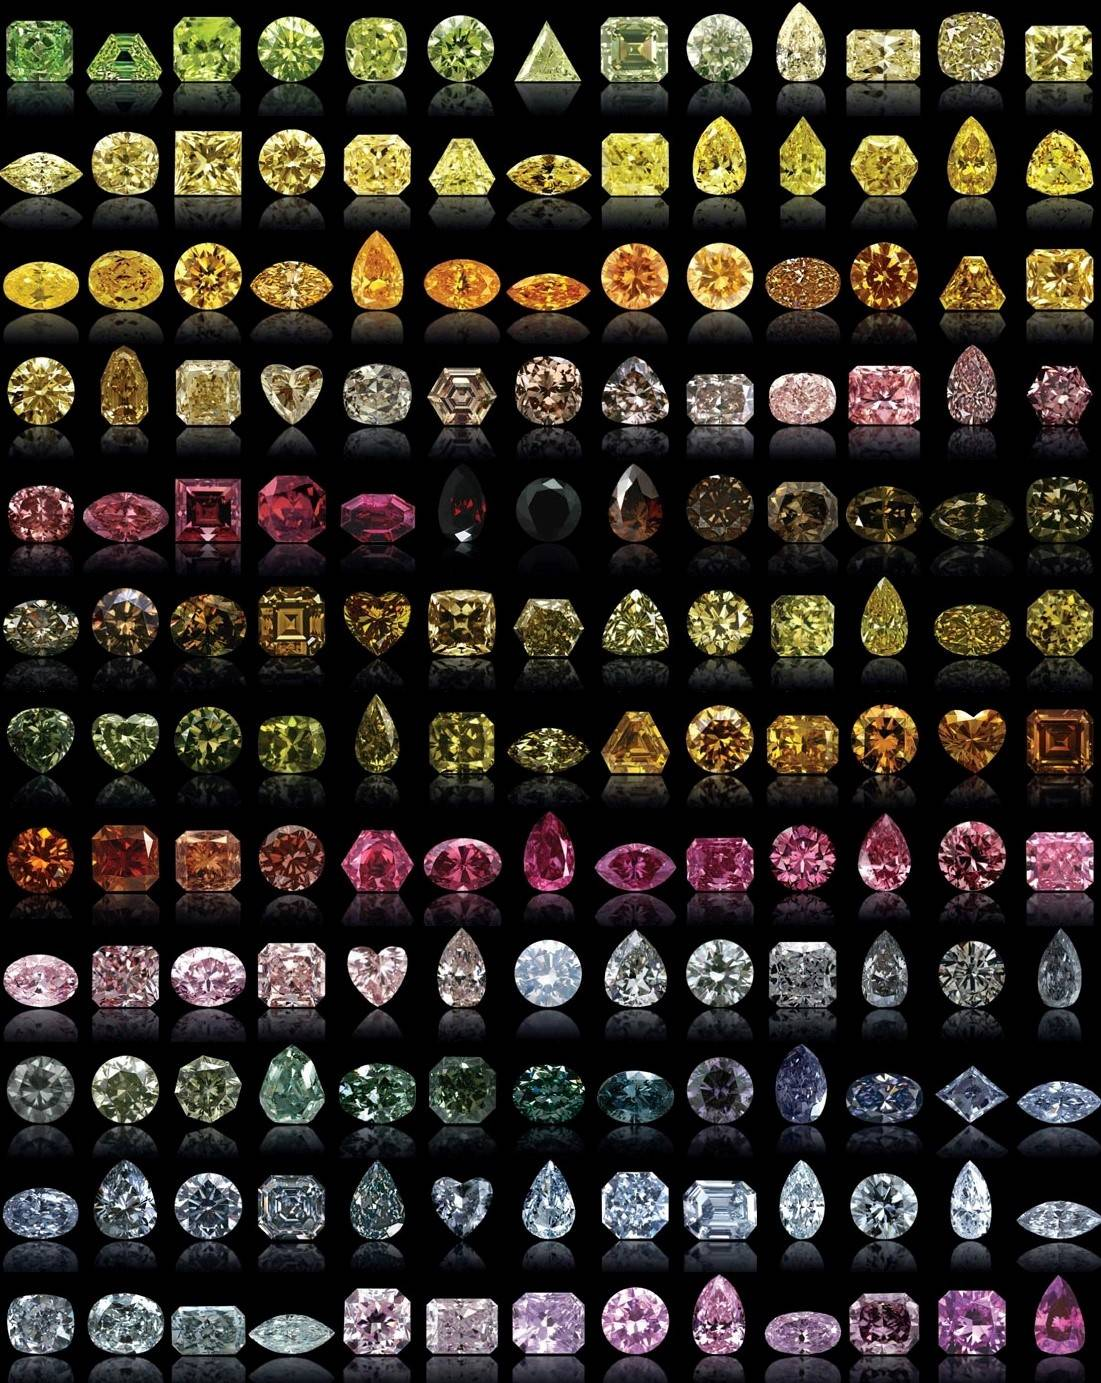 Natural fancy colored diamonds examples